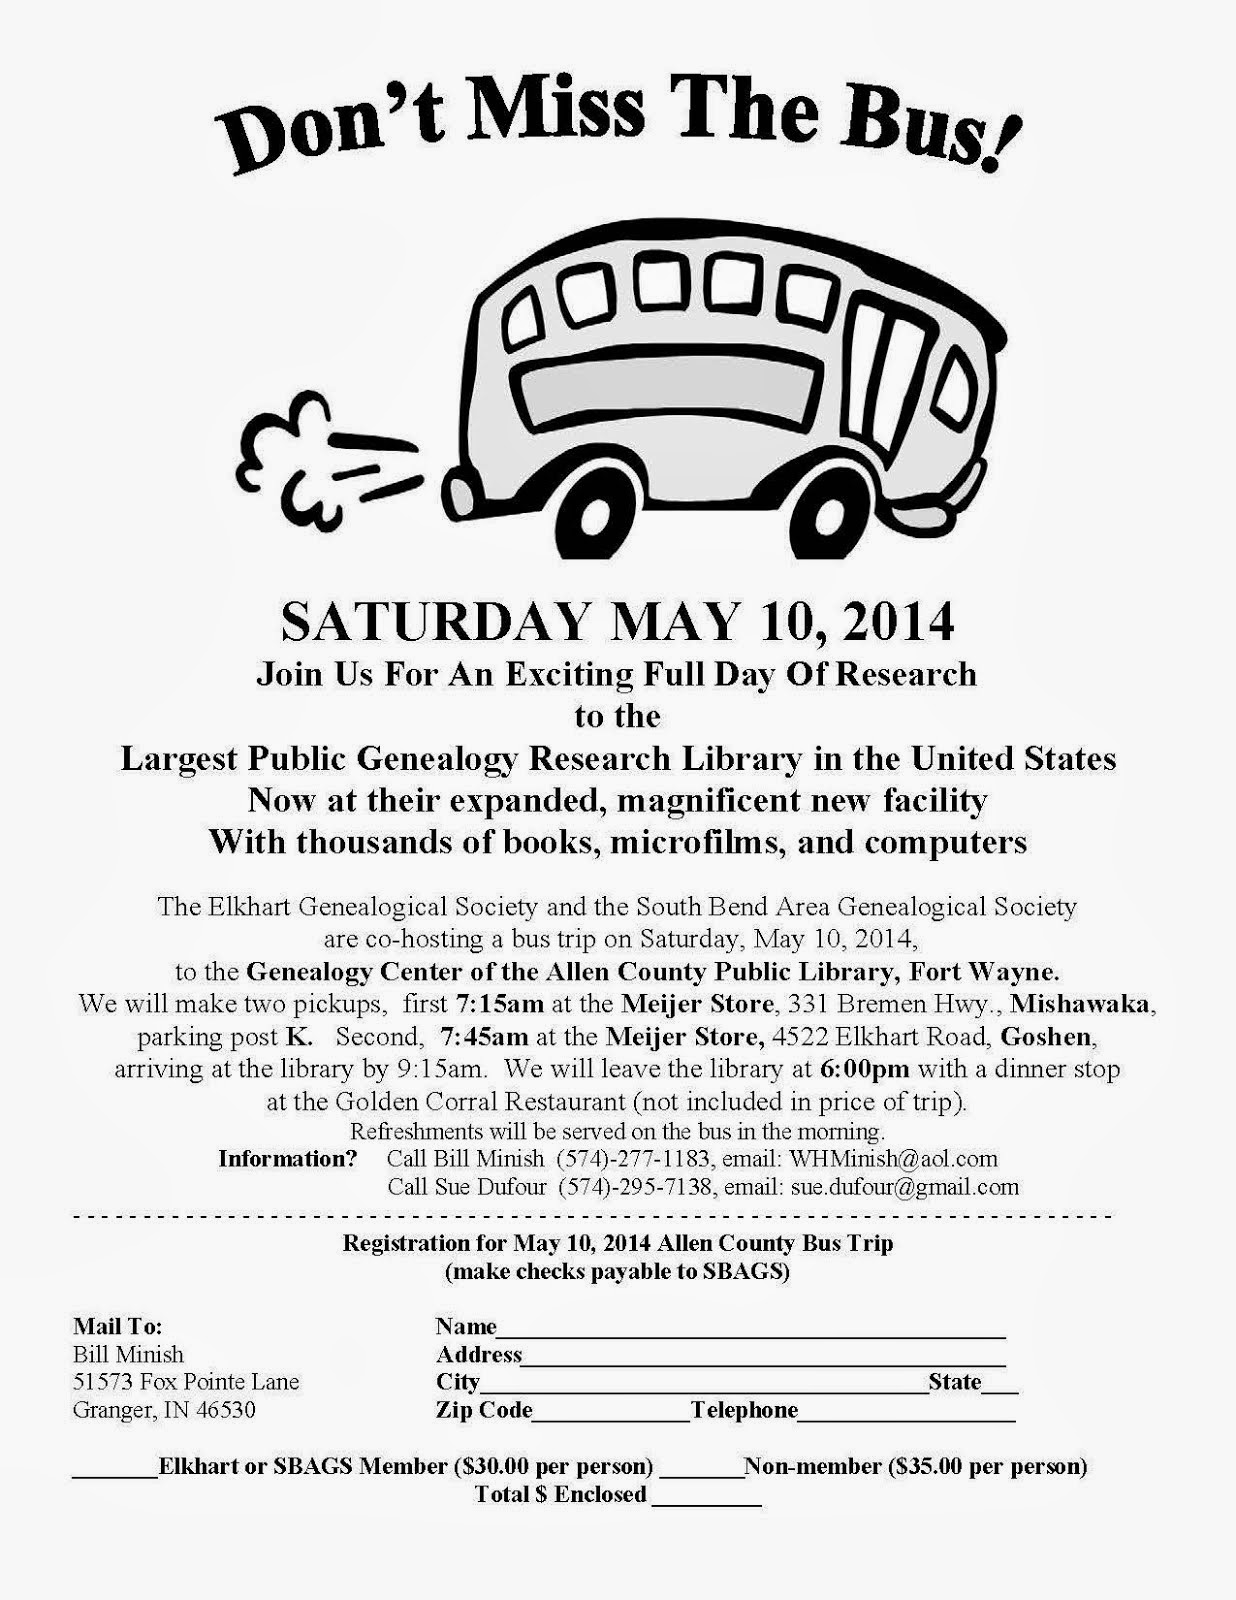 Annual Bus Trip to Allen County Public Library